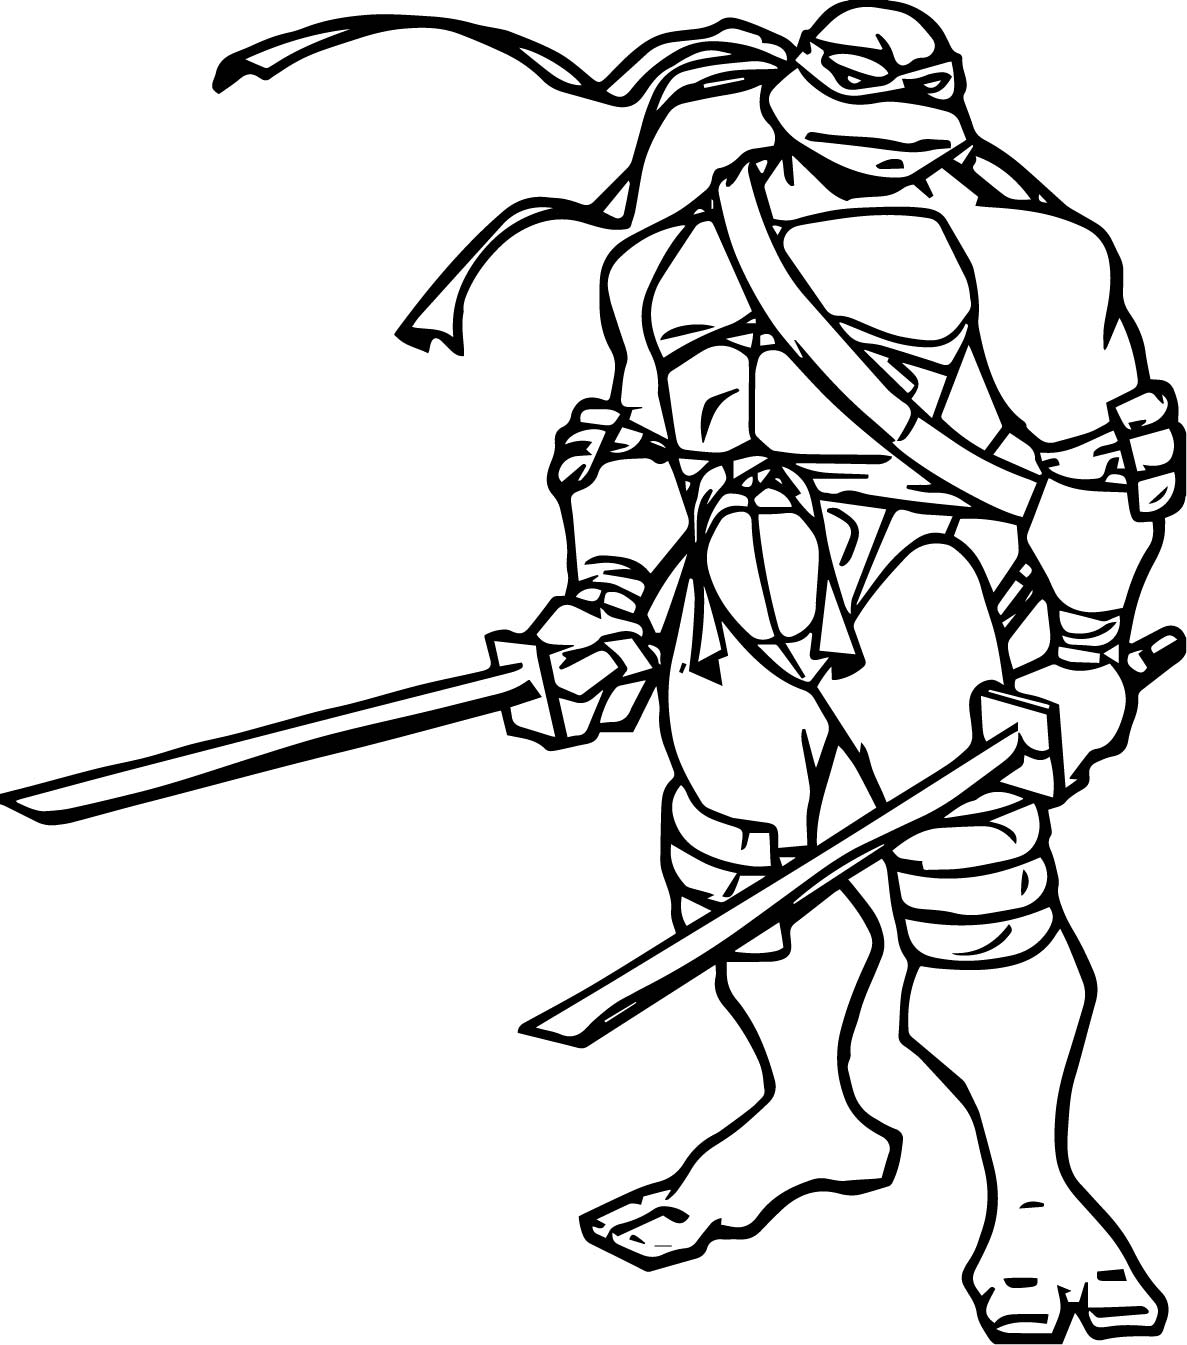 leonardo ninja turtles coloring lesson coloring pages for kids